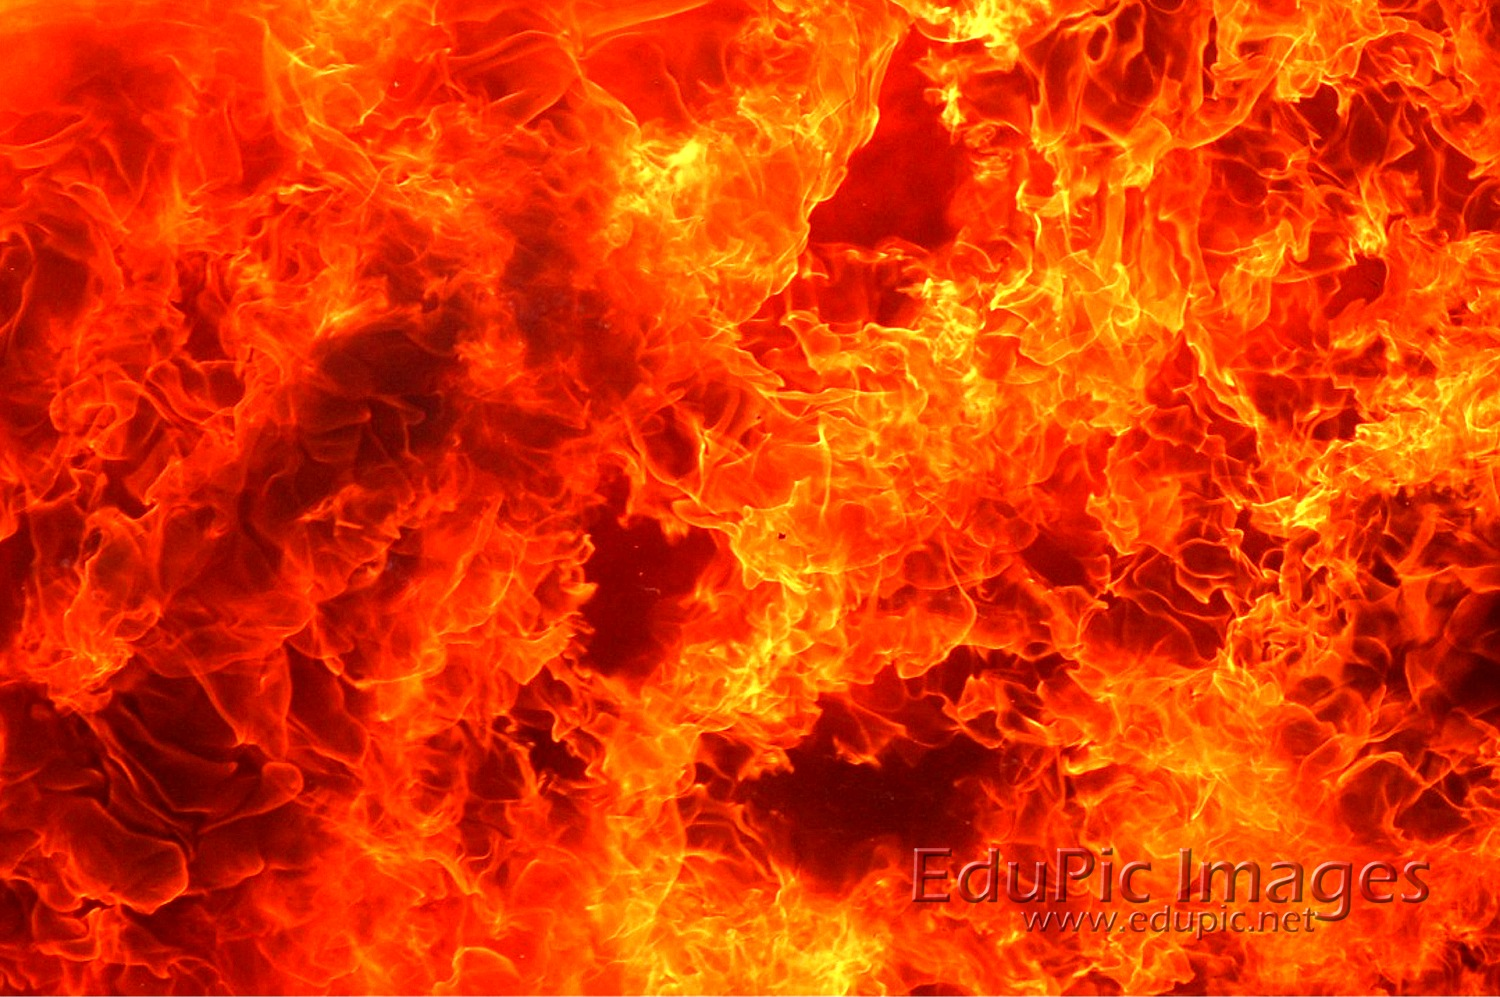 From Fire Wallpaper Flames Pictures 1500x997